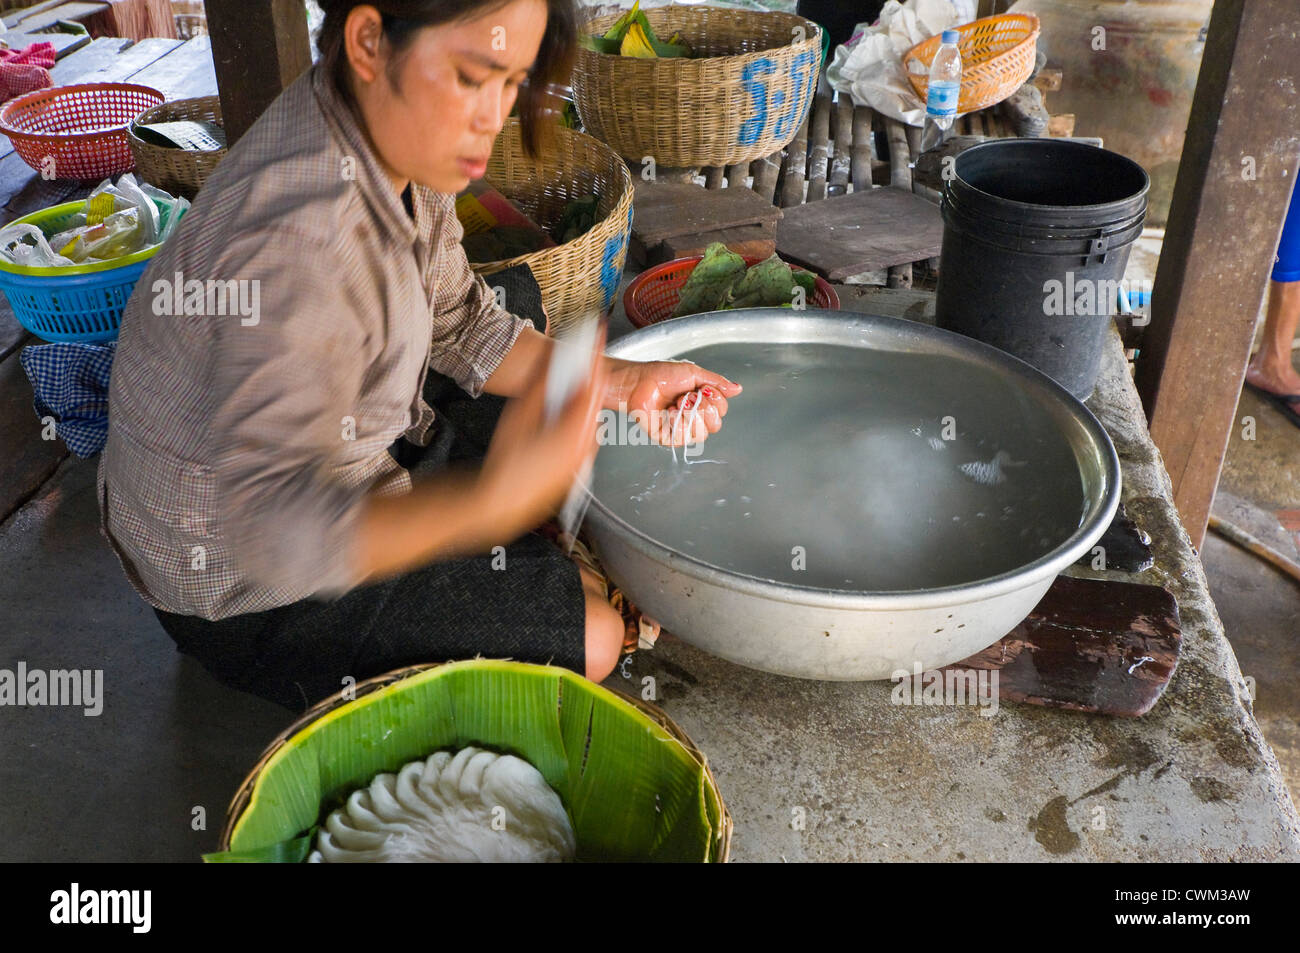 Horizontal close up portrait of a Cambodian woman making rice noodles, kh'teaw, in basic surroundings. - Stock Image